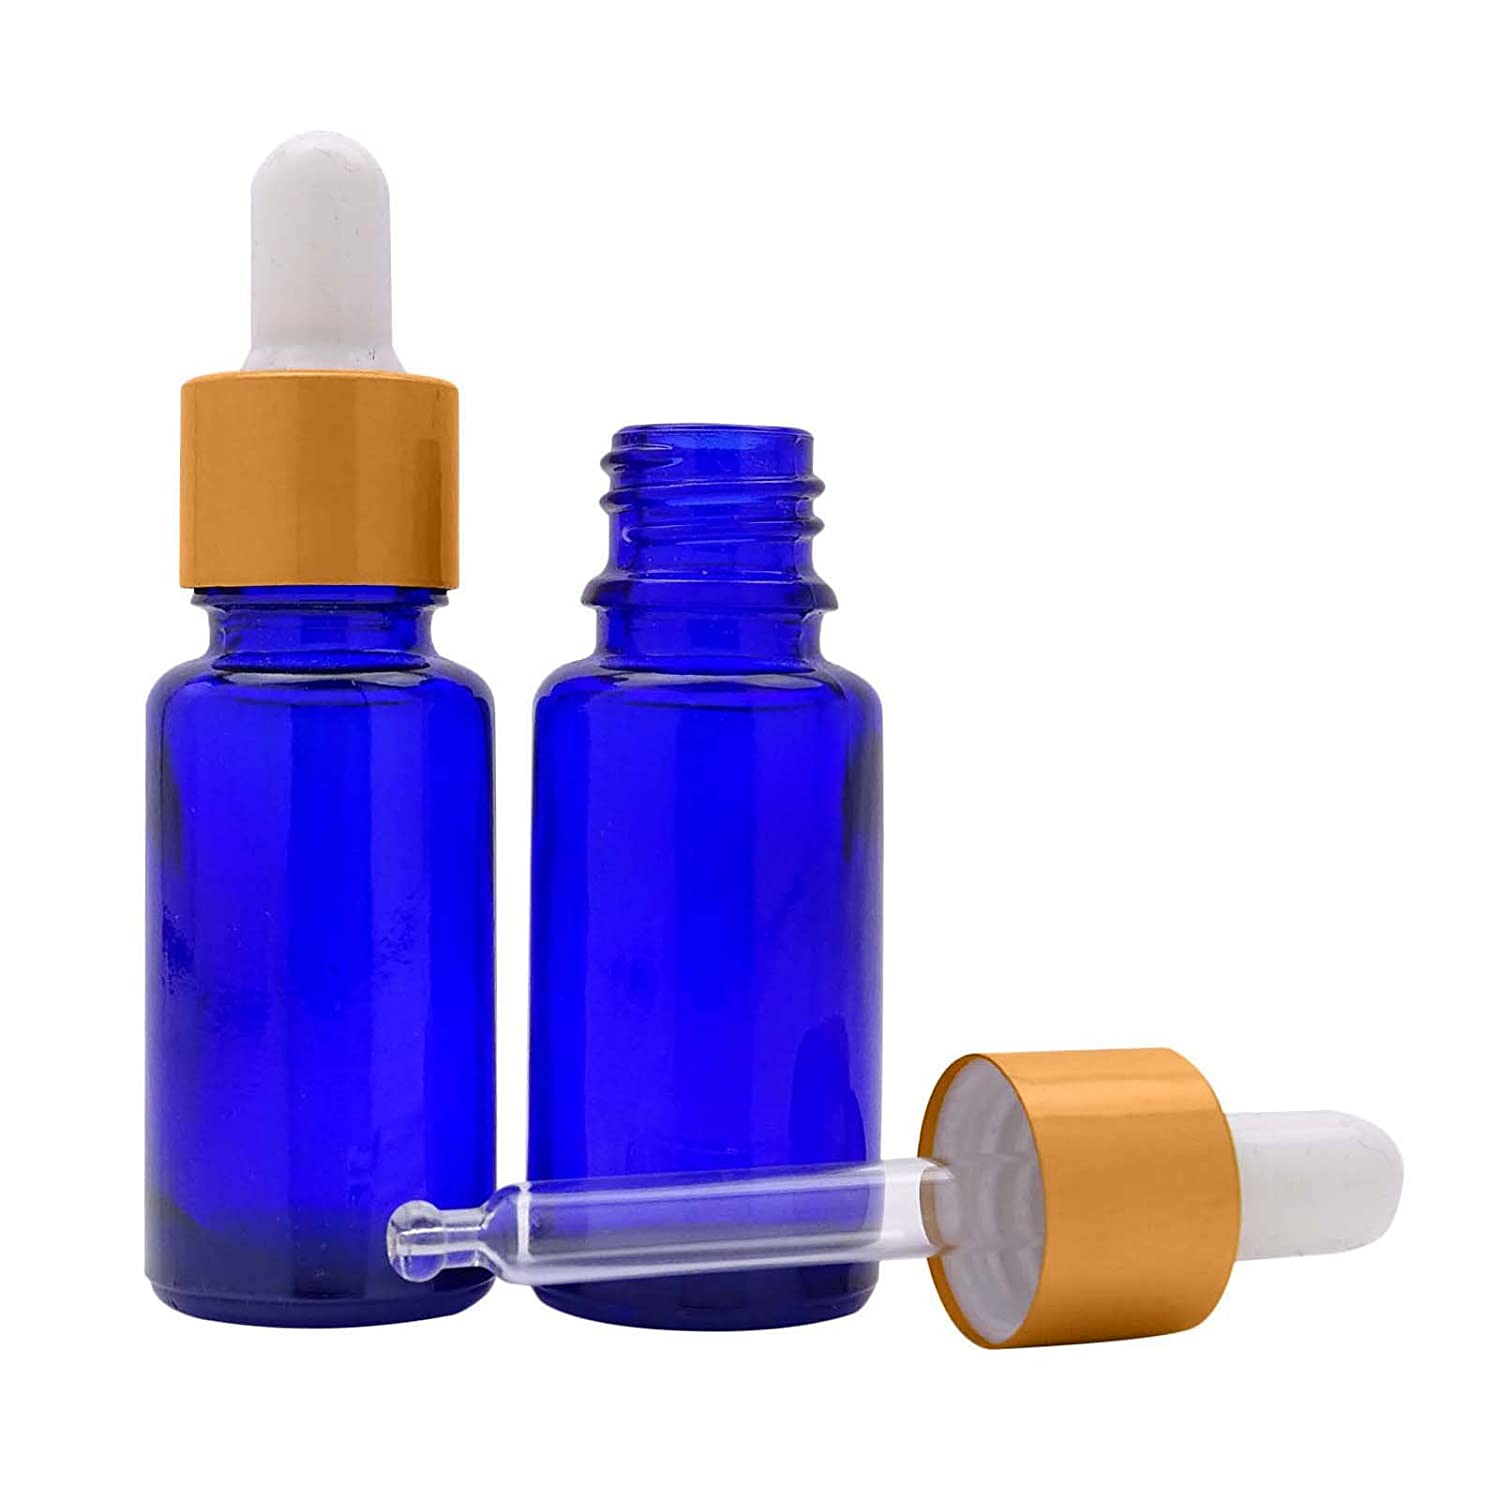 Lot Of 100 Cobalt Blue Glass Eye Dropper Bottle Refillable Serum Aromatherapy Wholesale Essential Oils Pipette Dropper Bottles Golden Matt Cap Boston Round Bottle 10 ml MT Bottles & Jars